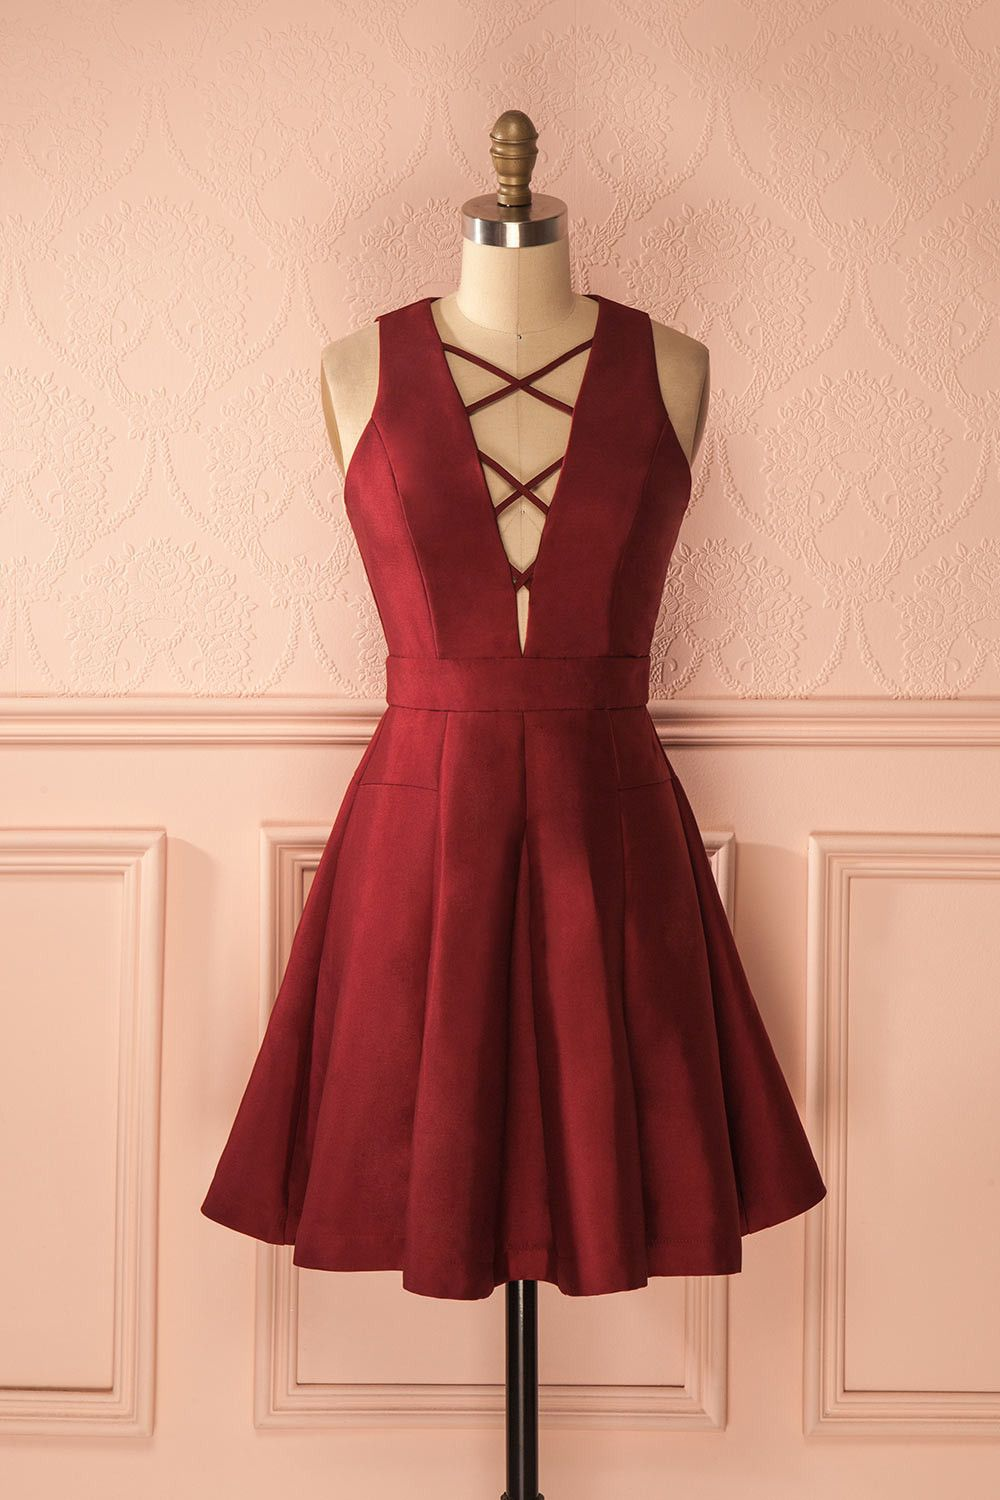 Zoélie bourgogne dressing gown burgundy shorts and homecoming